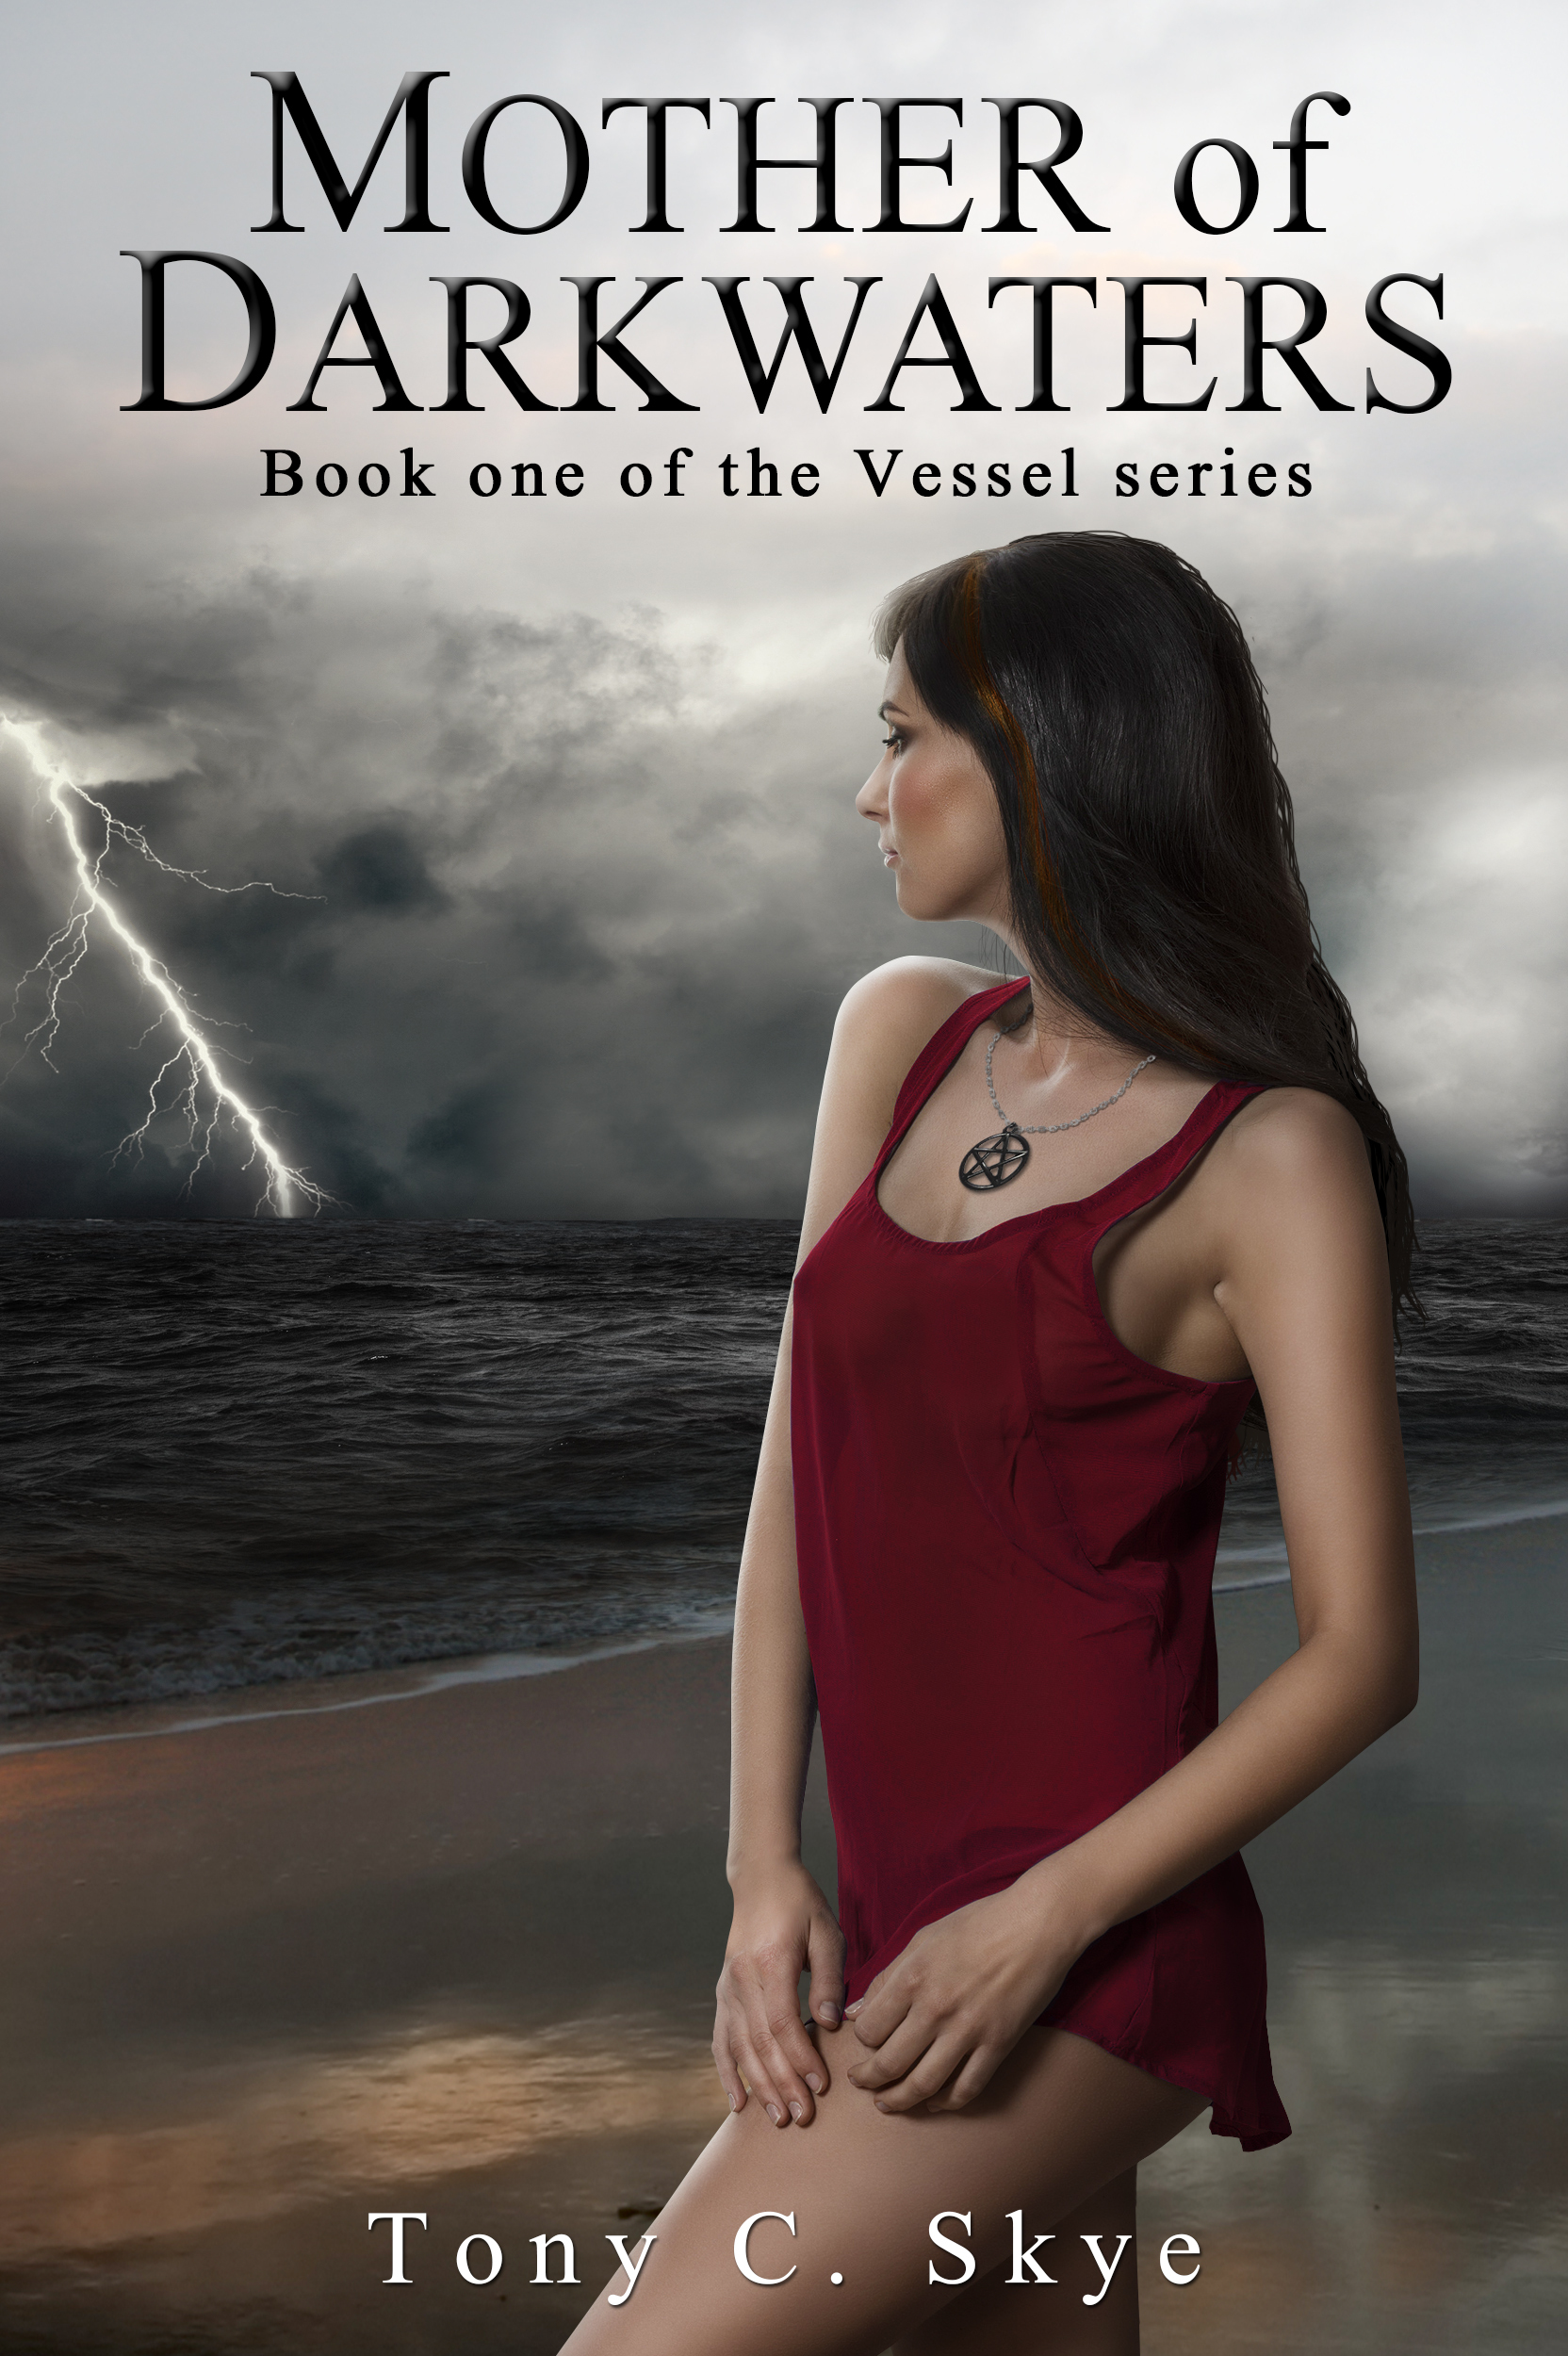 Mother of Darkwaters: Book one of the Vessel series Tony C. Skye